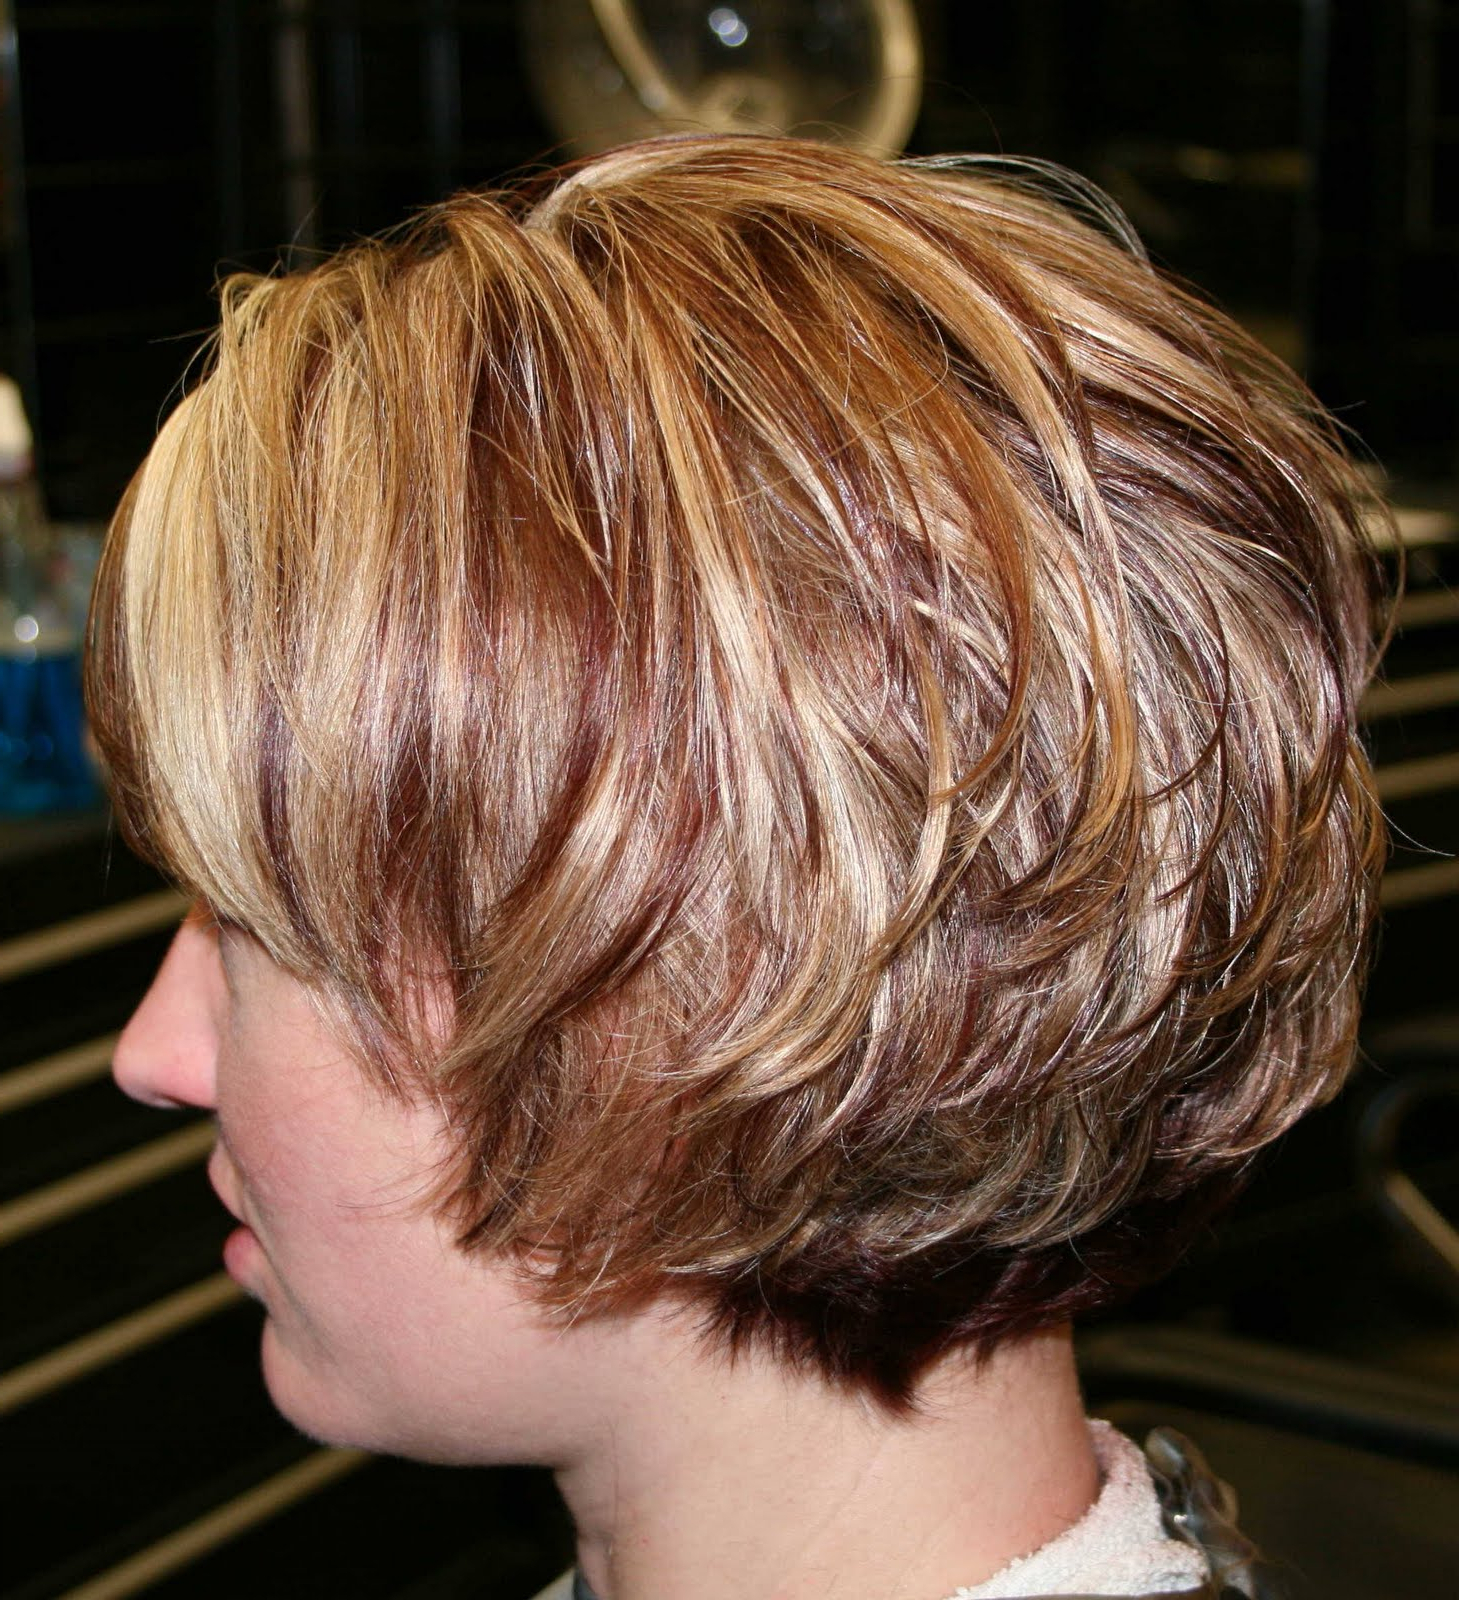 New Haircuts And Hairstyles: Trendy Hairstyles With Modern And Chic In Wavy Sassy Bob Hairstyles (View 19 of 25)